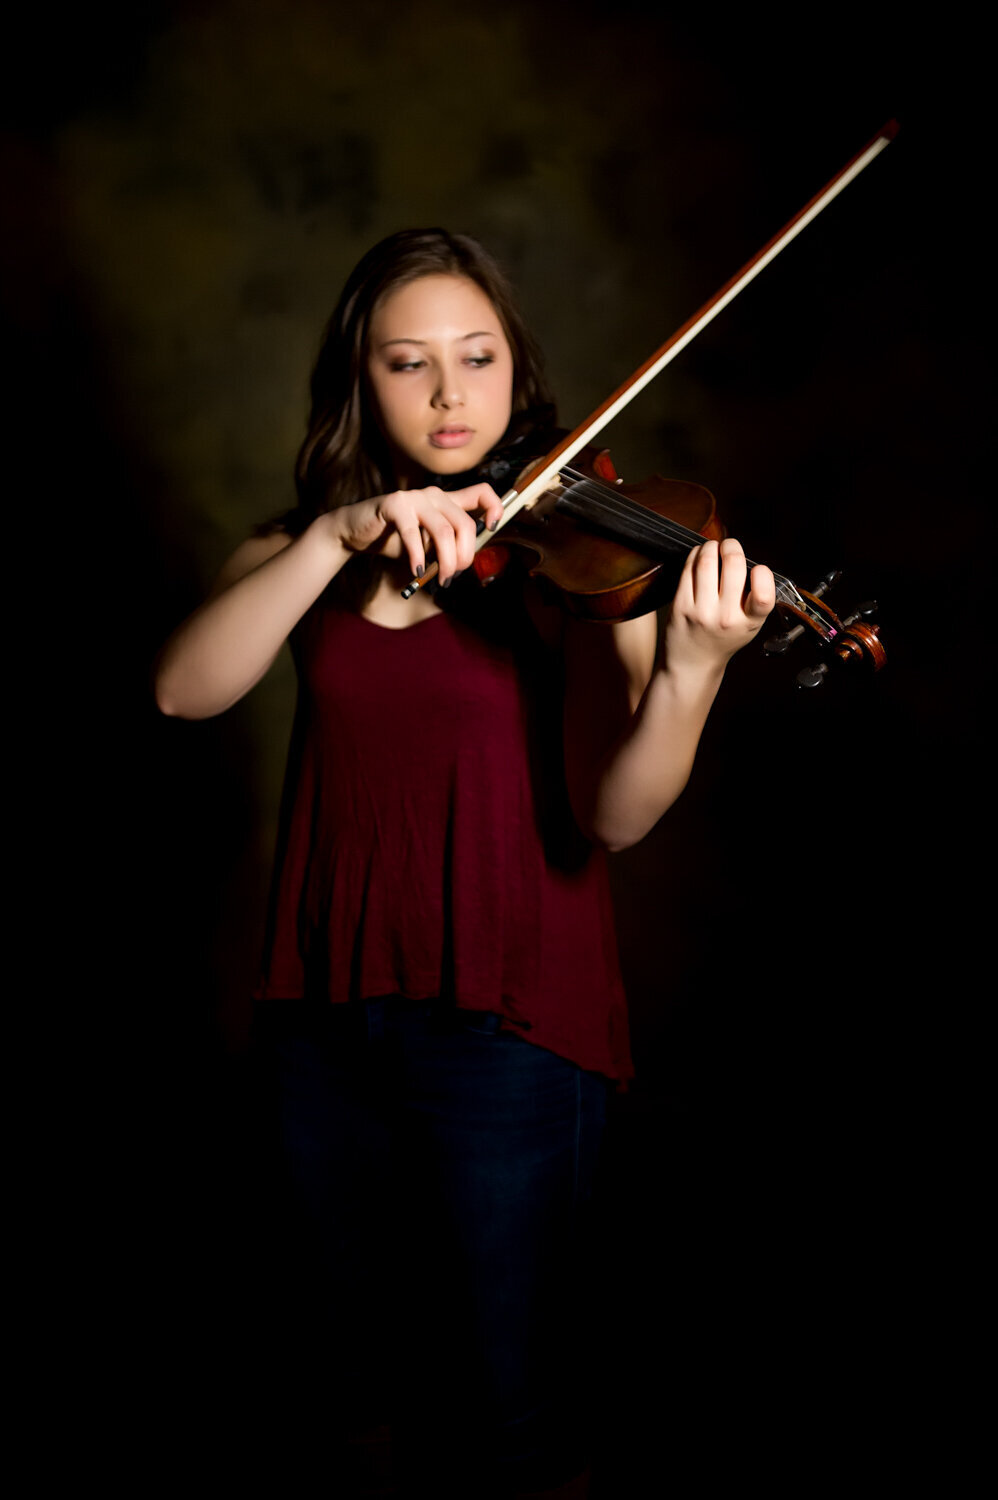 indoor studio girl playing violin classic photo